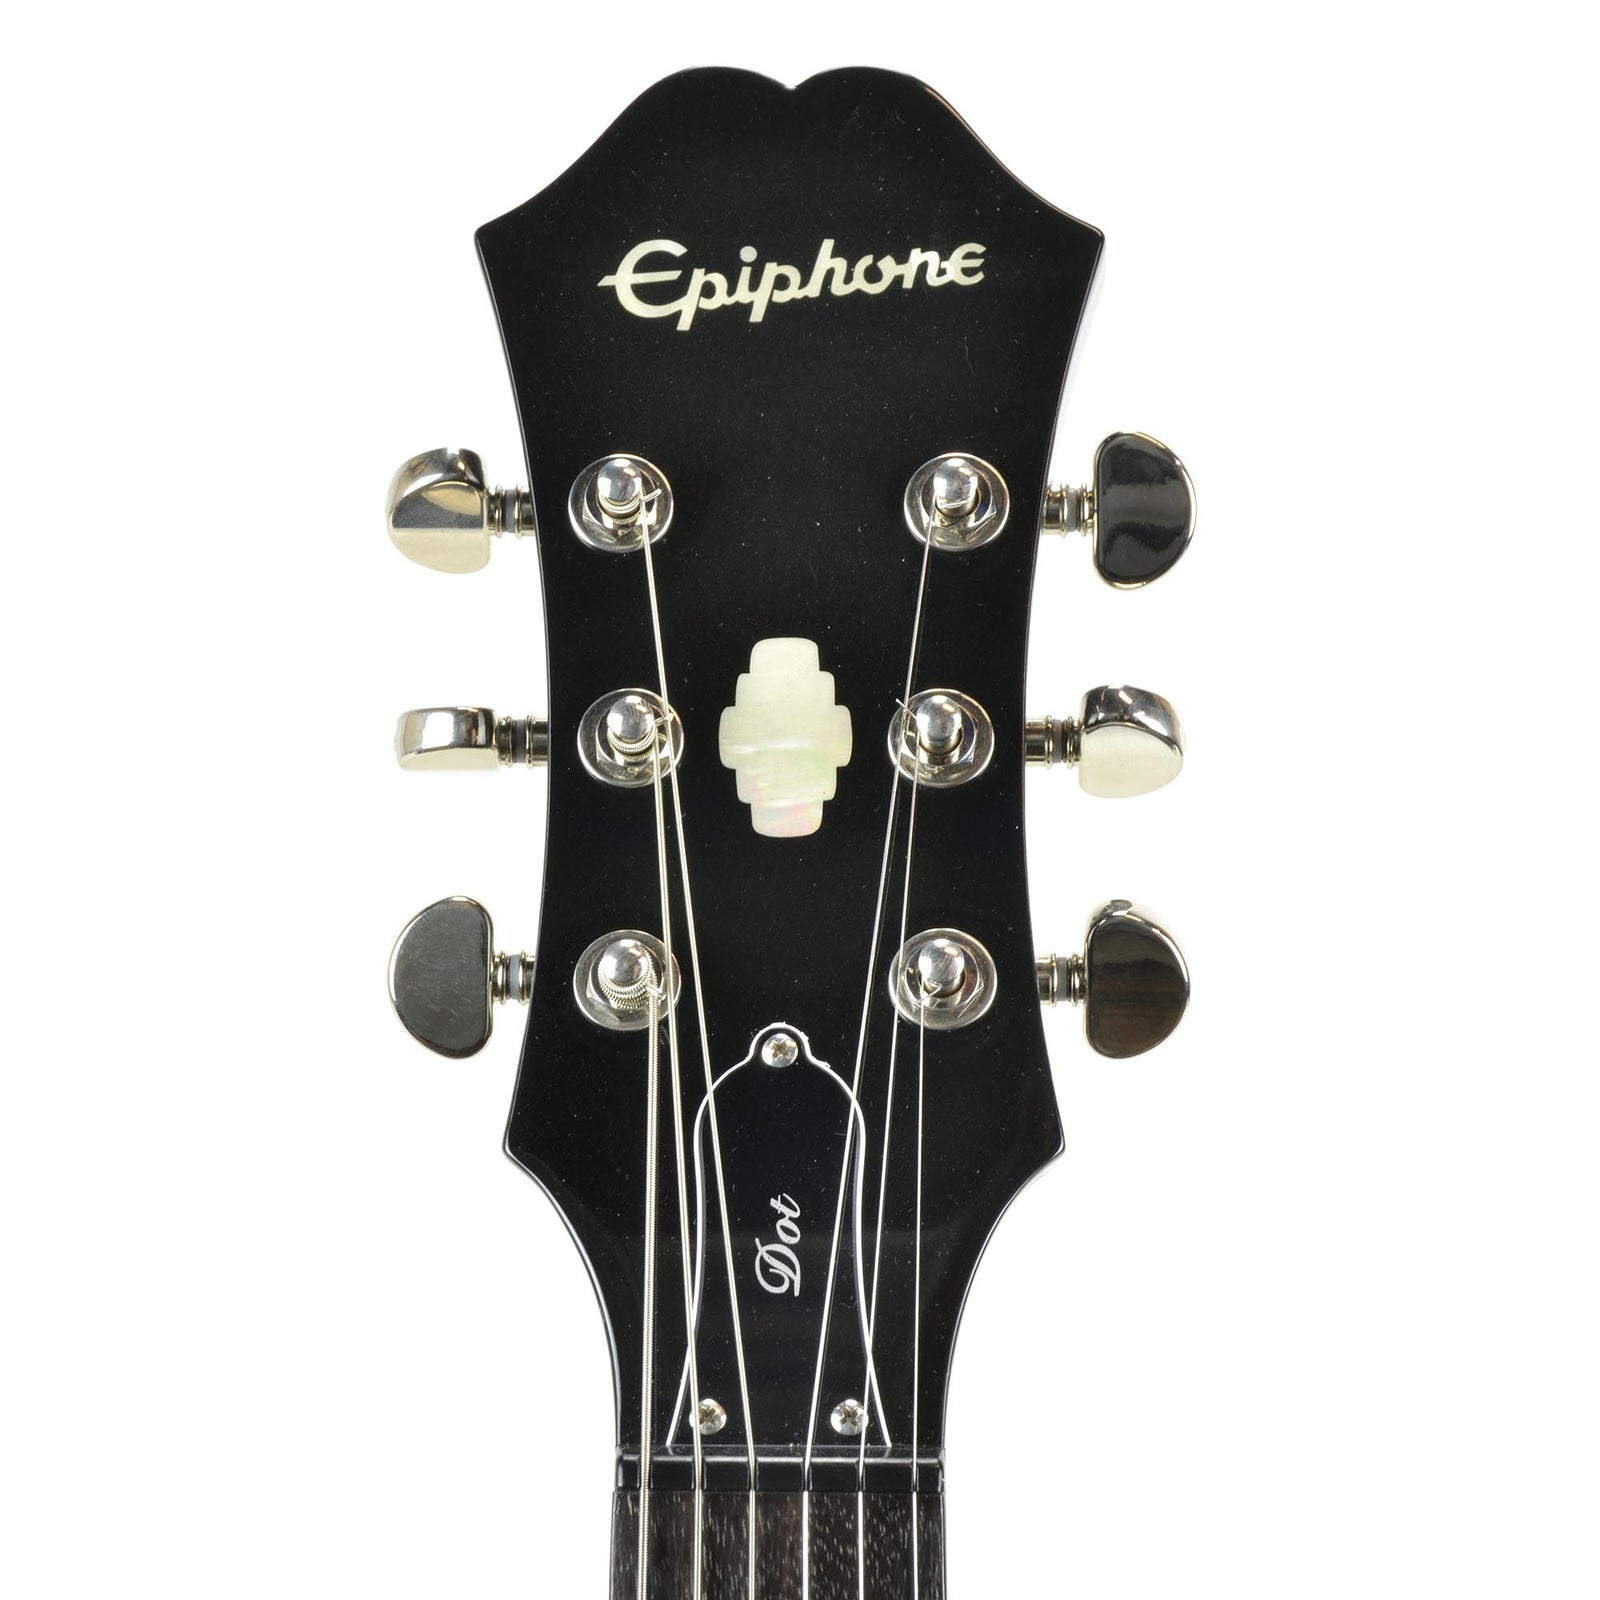 Epiphone Dot Ebony With Epiphone Hard Case - Used